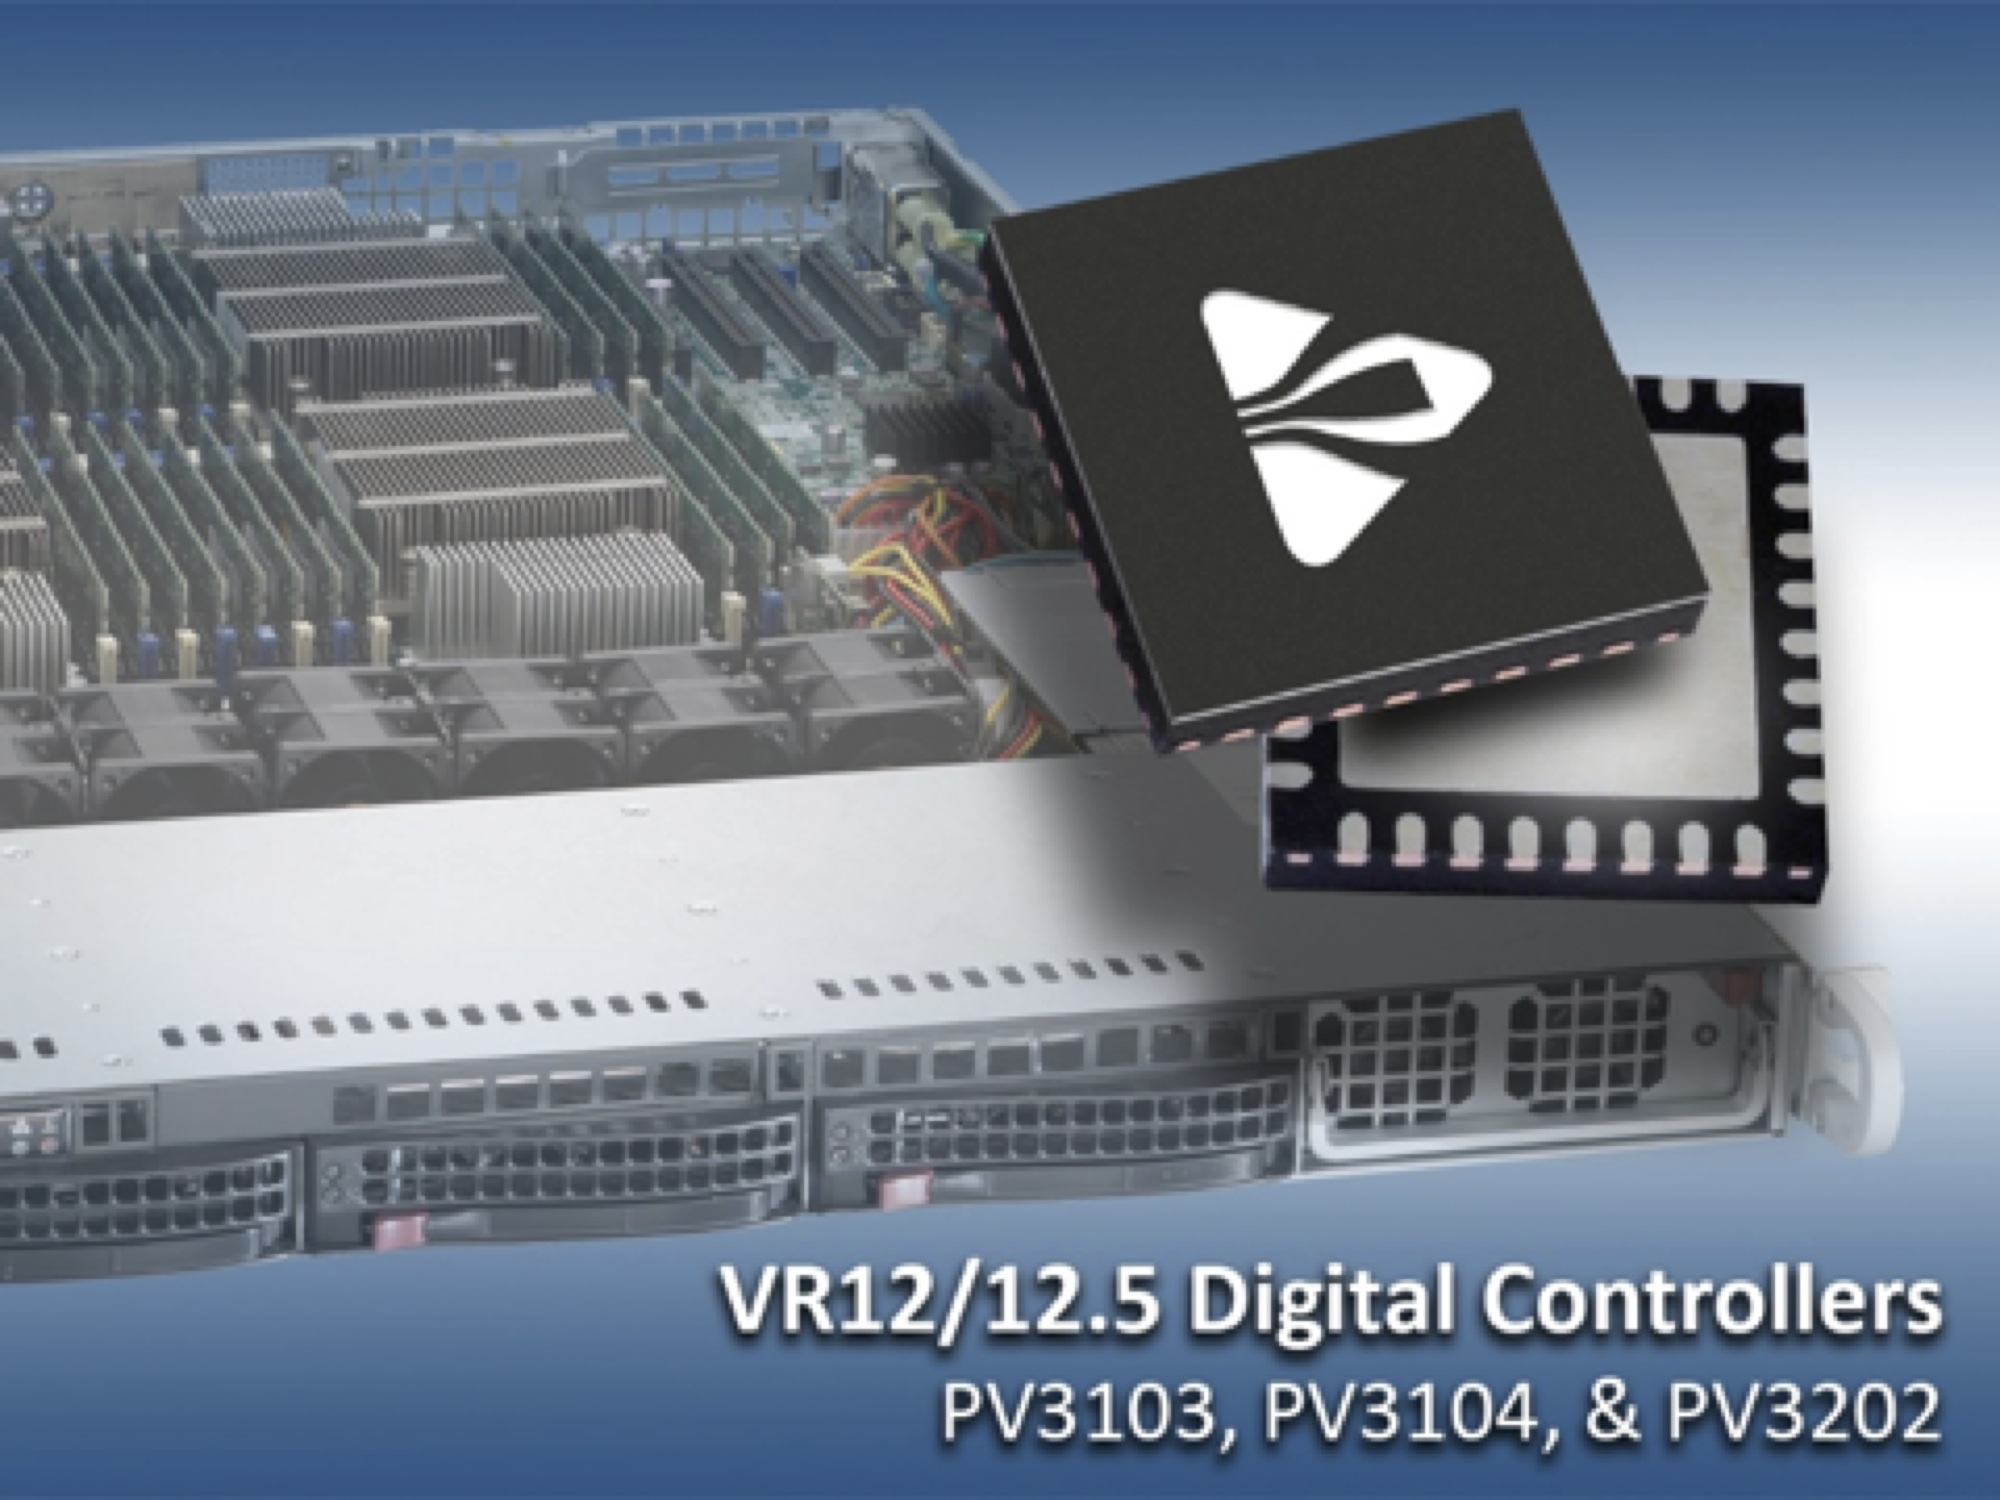 Powervation's digital controller family is VR12/12.5-compliant